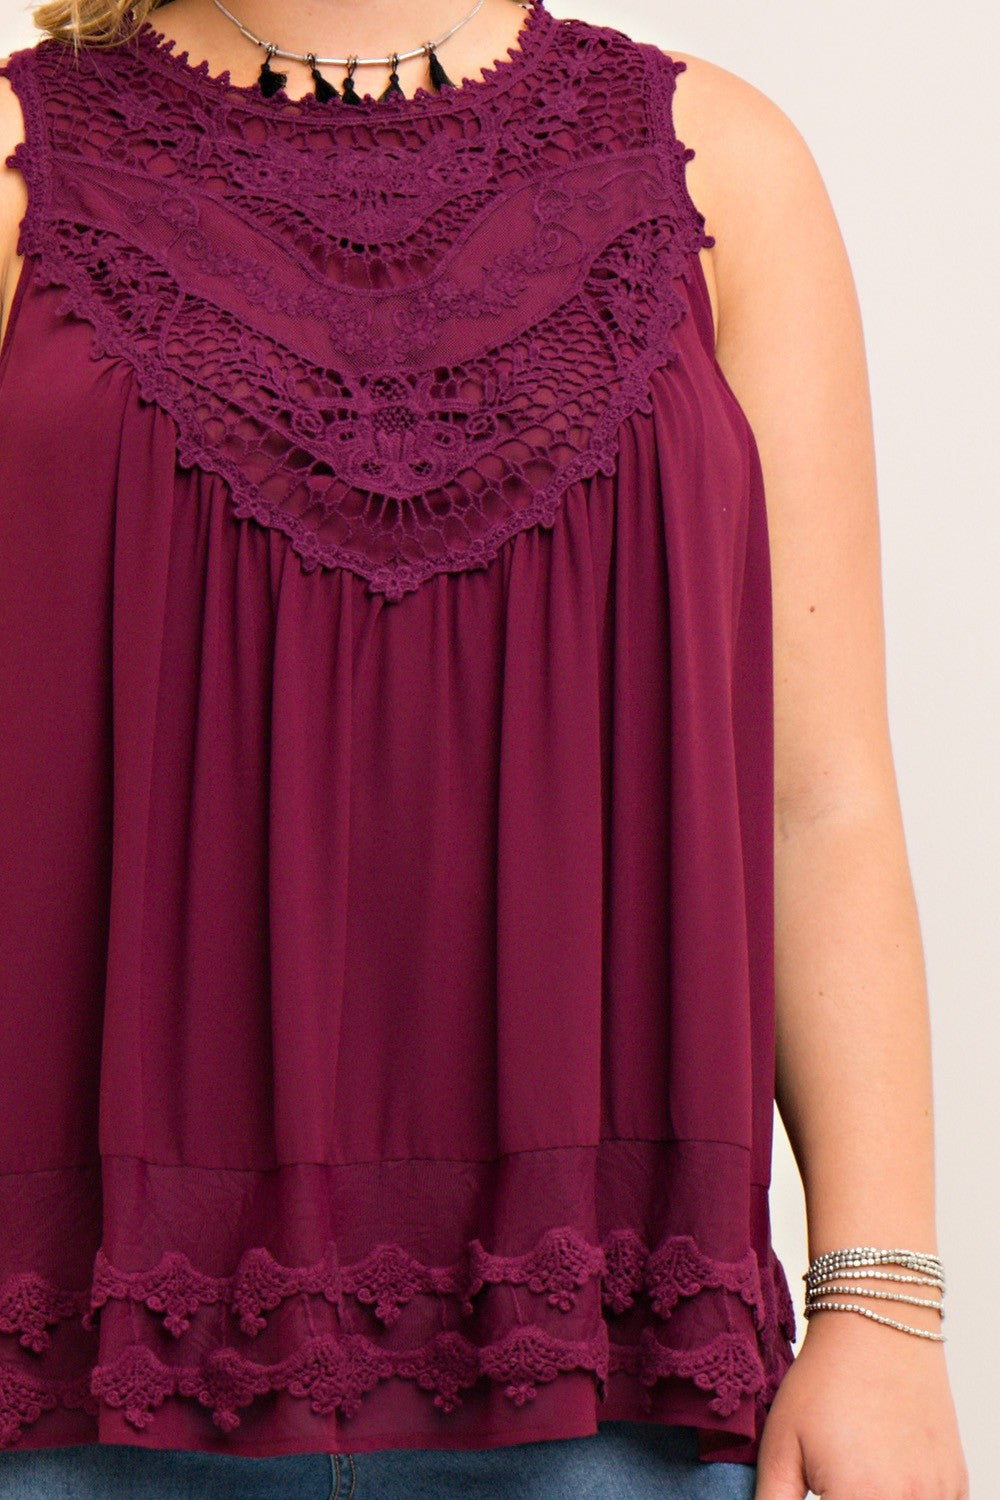 Front detail view wine colored sleeveless crochet trim top